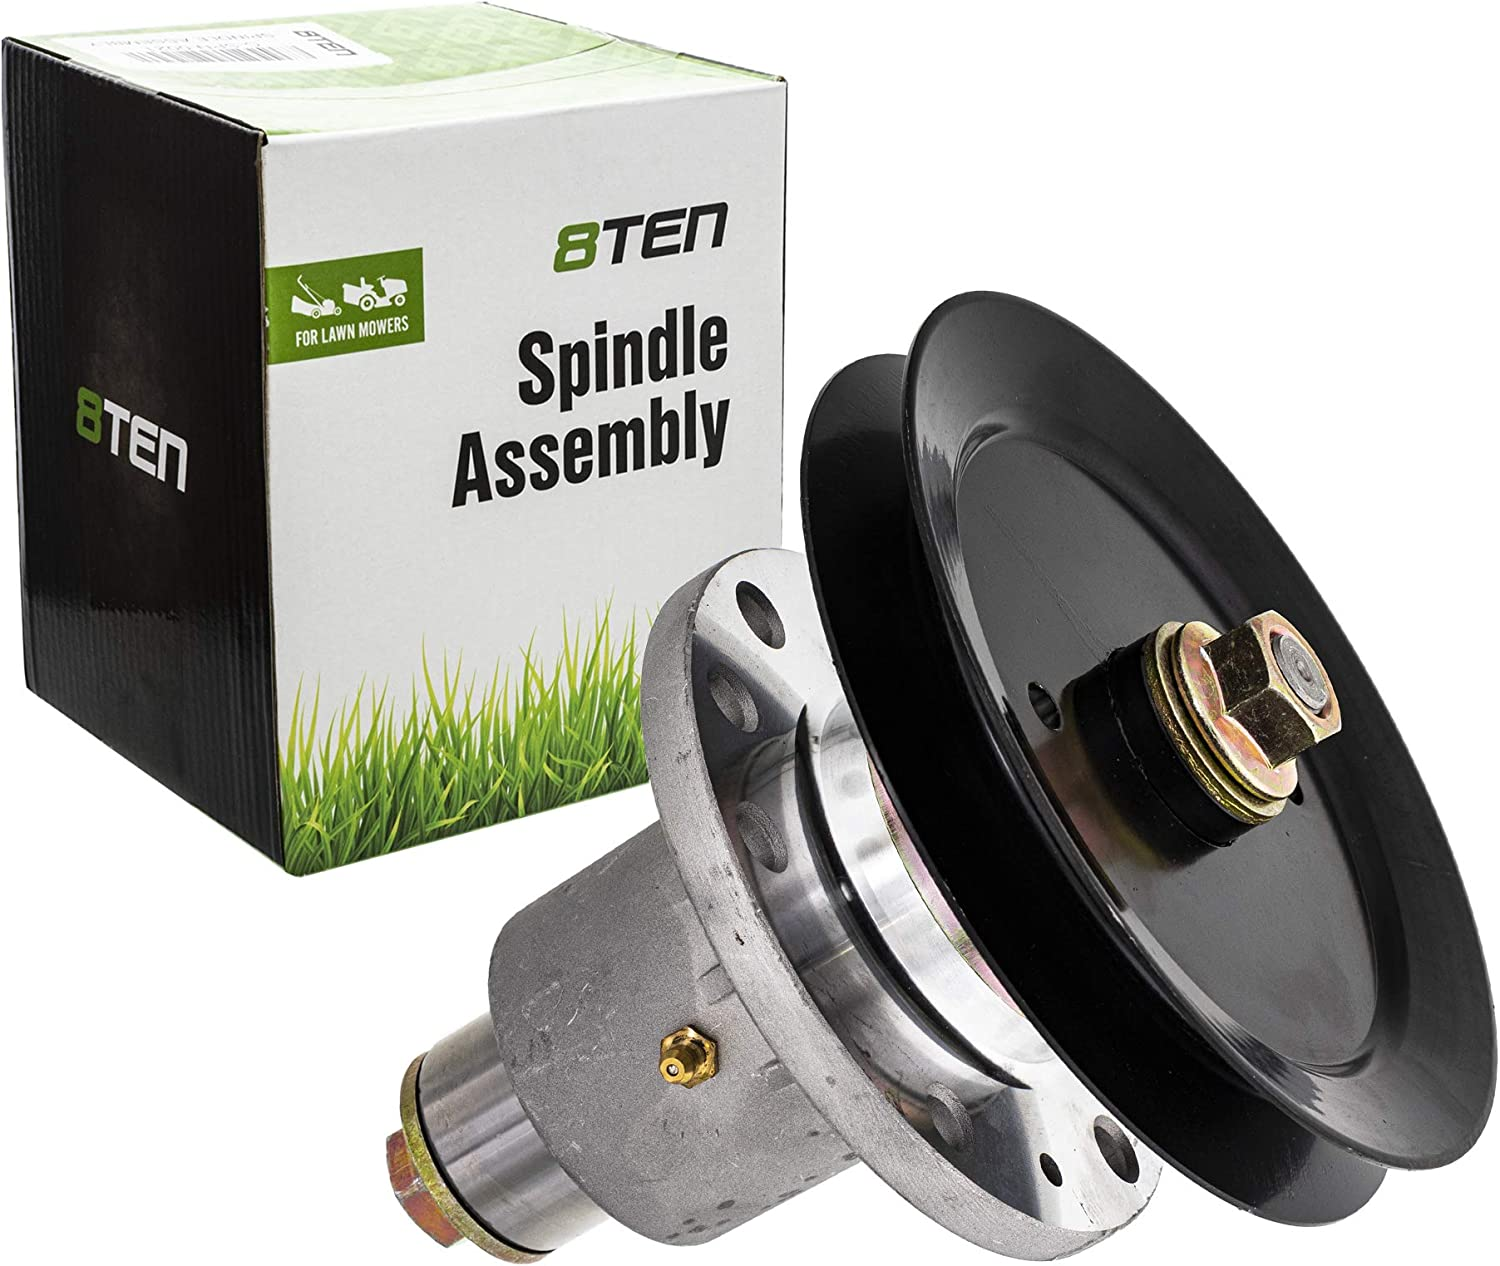 8TEN Spindle Assembly for Exmark 52 Inch Deck Lazer Z HP Zero Turn Mower 103-1184